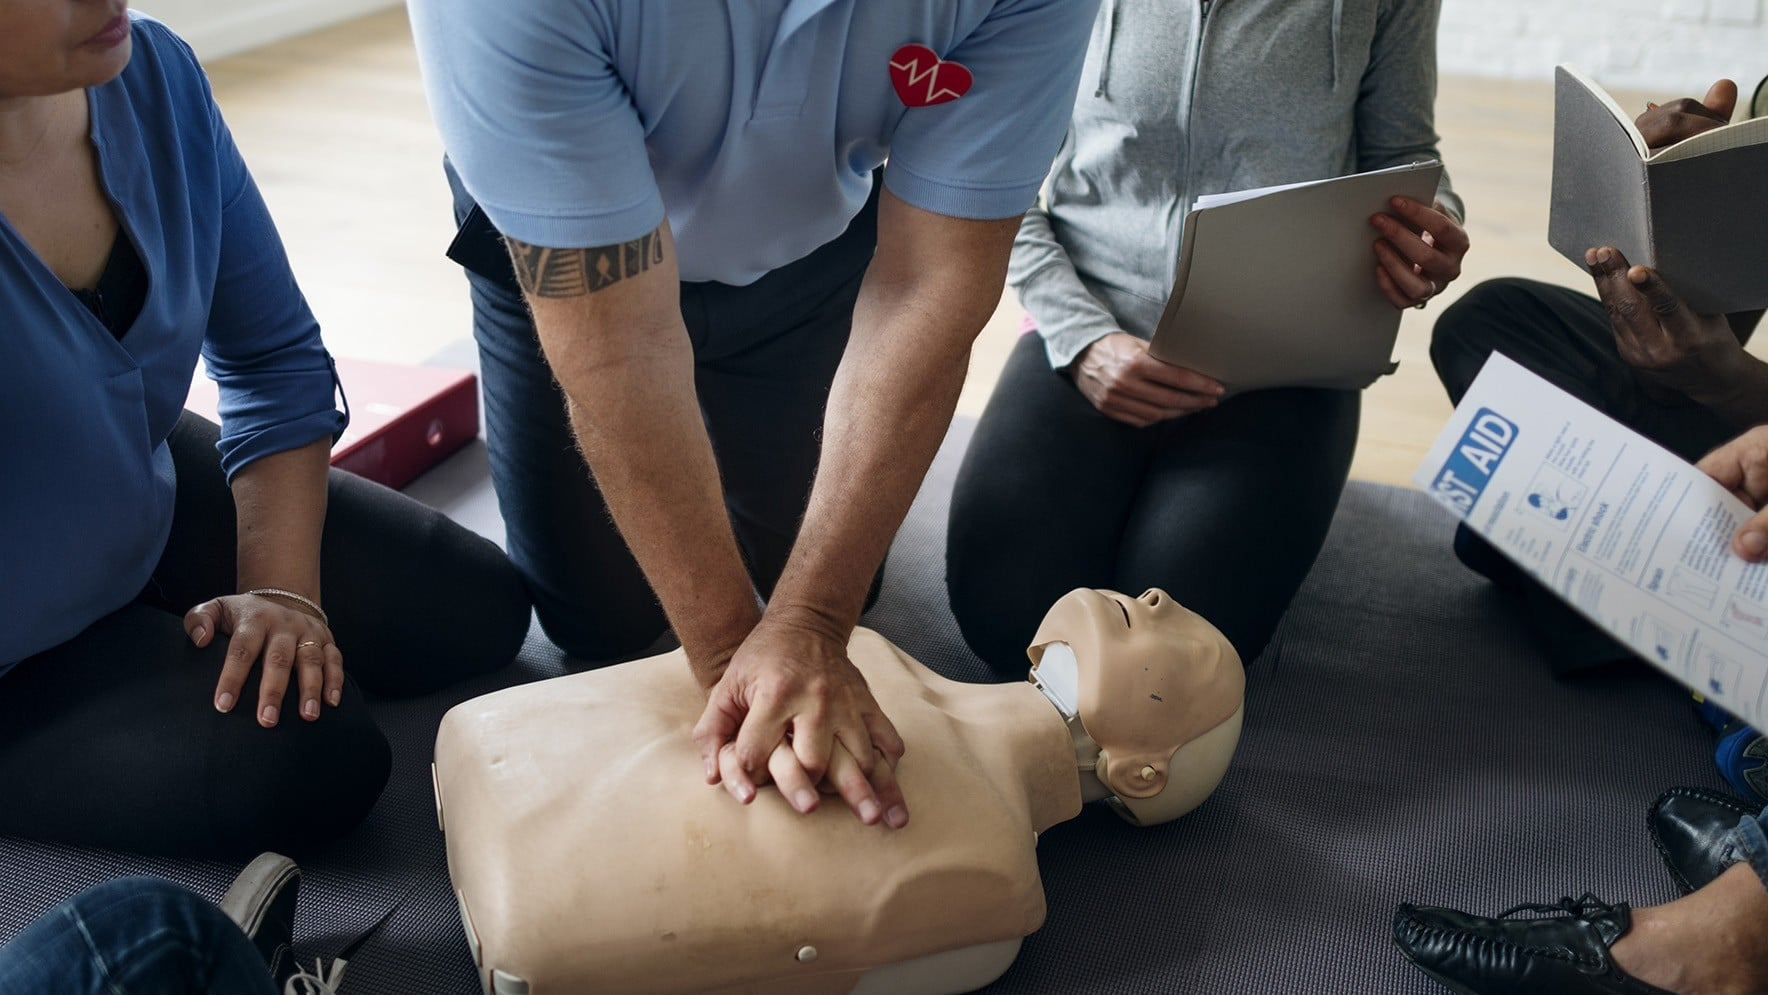 group of people learning first aid